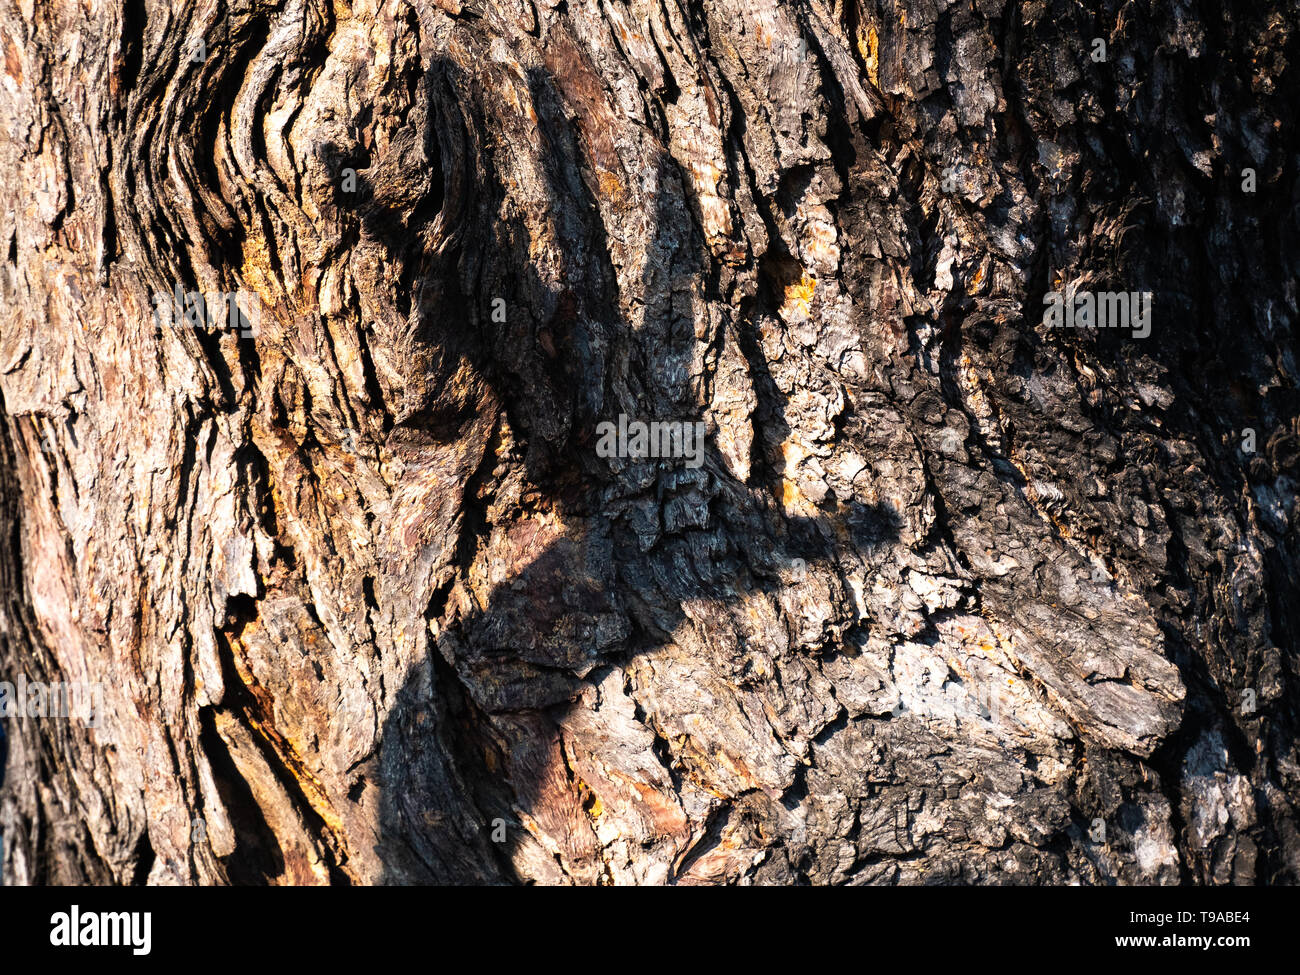 a tree texture close up  with the other hand background. Concept natural is easily destroyed because of man. - Stock Image